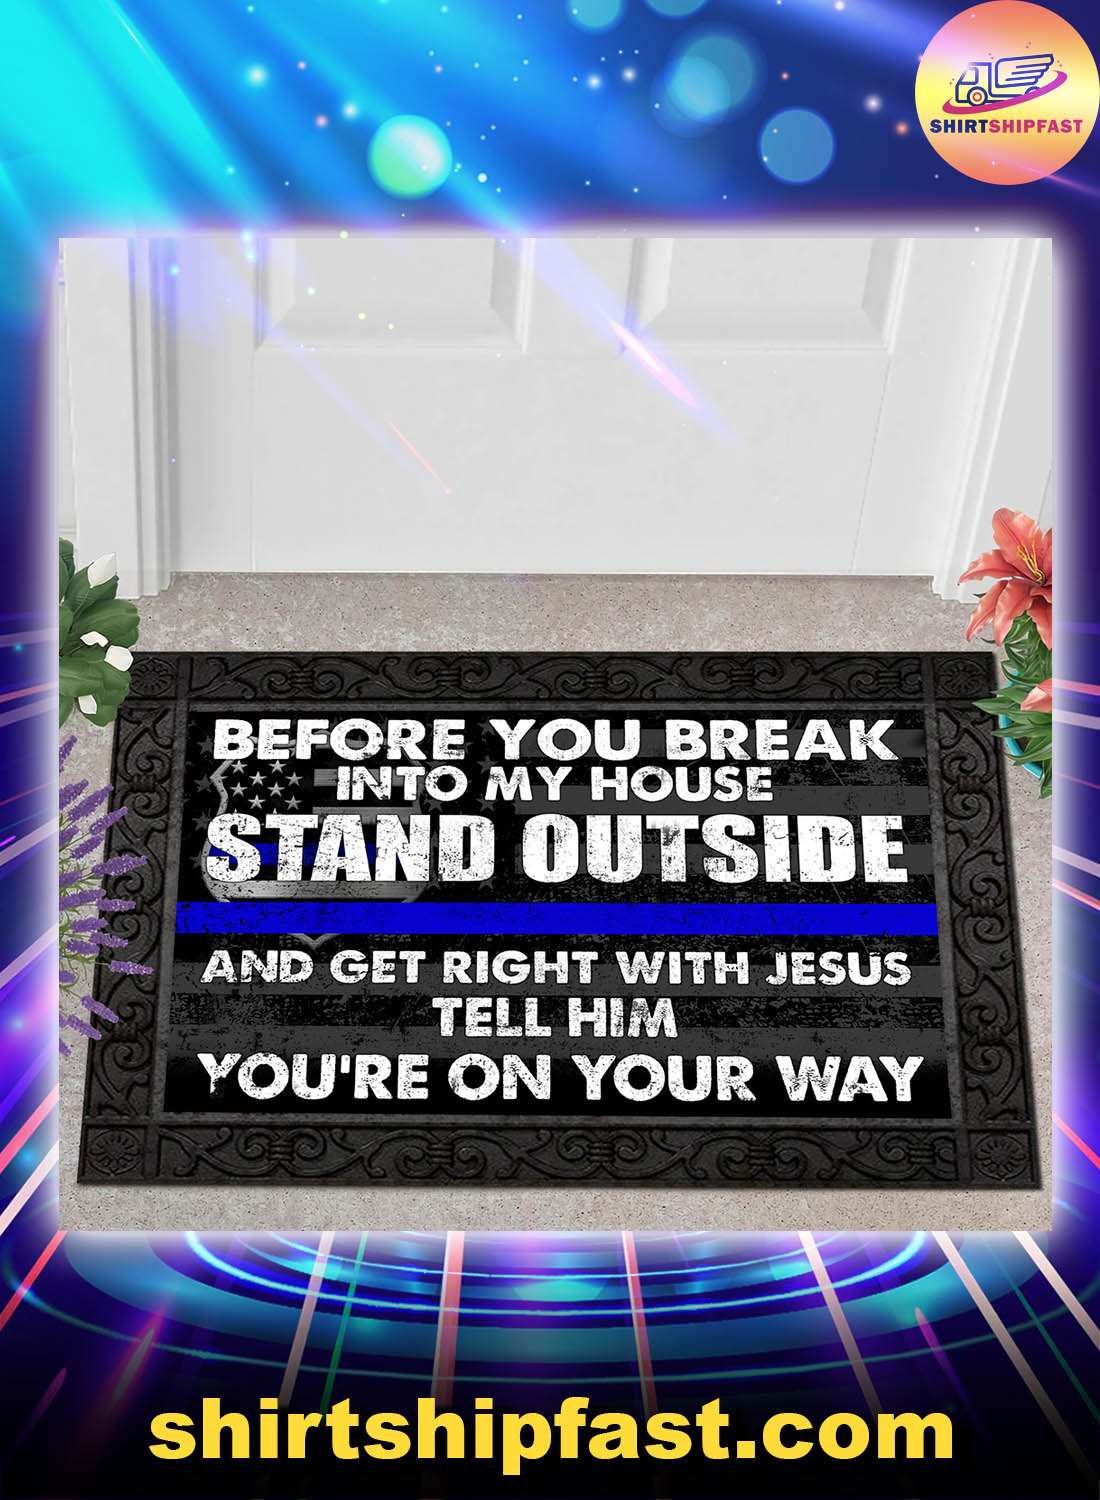 Police Before you break into my house stand outside and get right with Jesus doormat - Picture 1